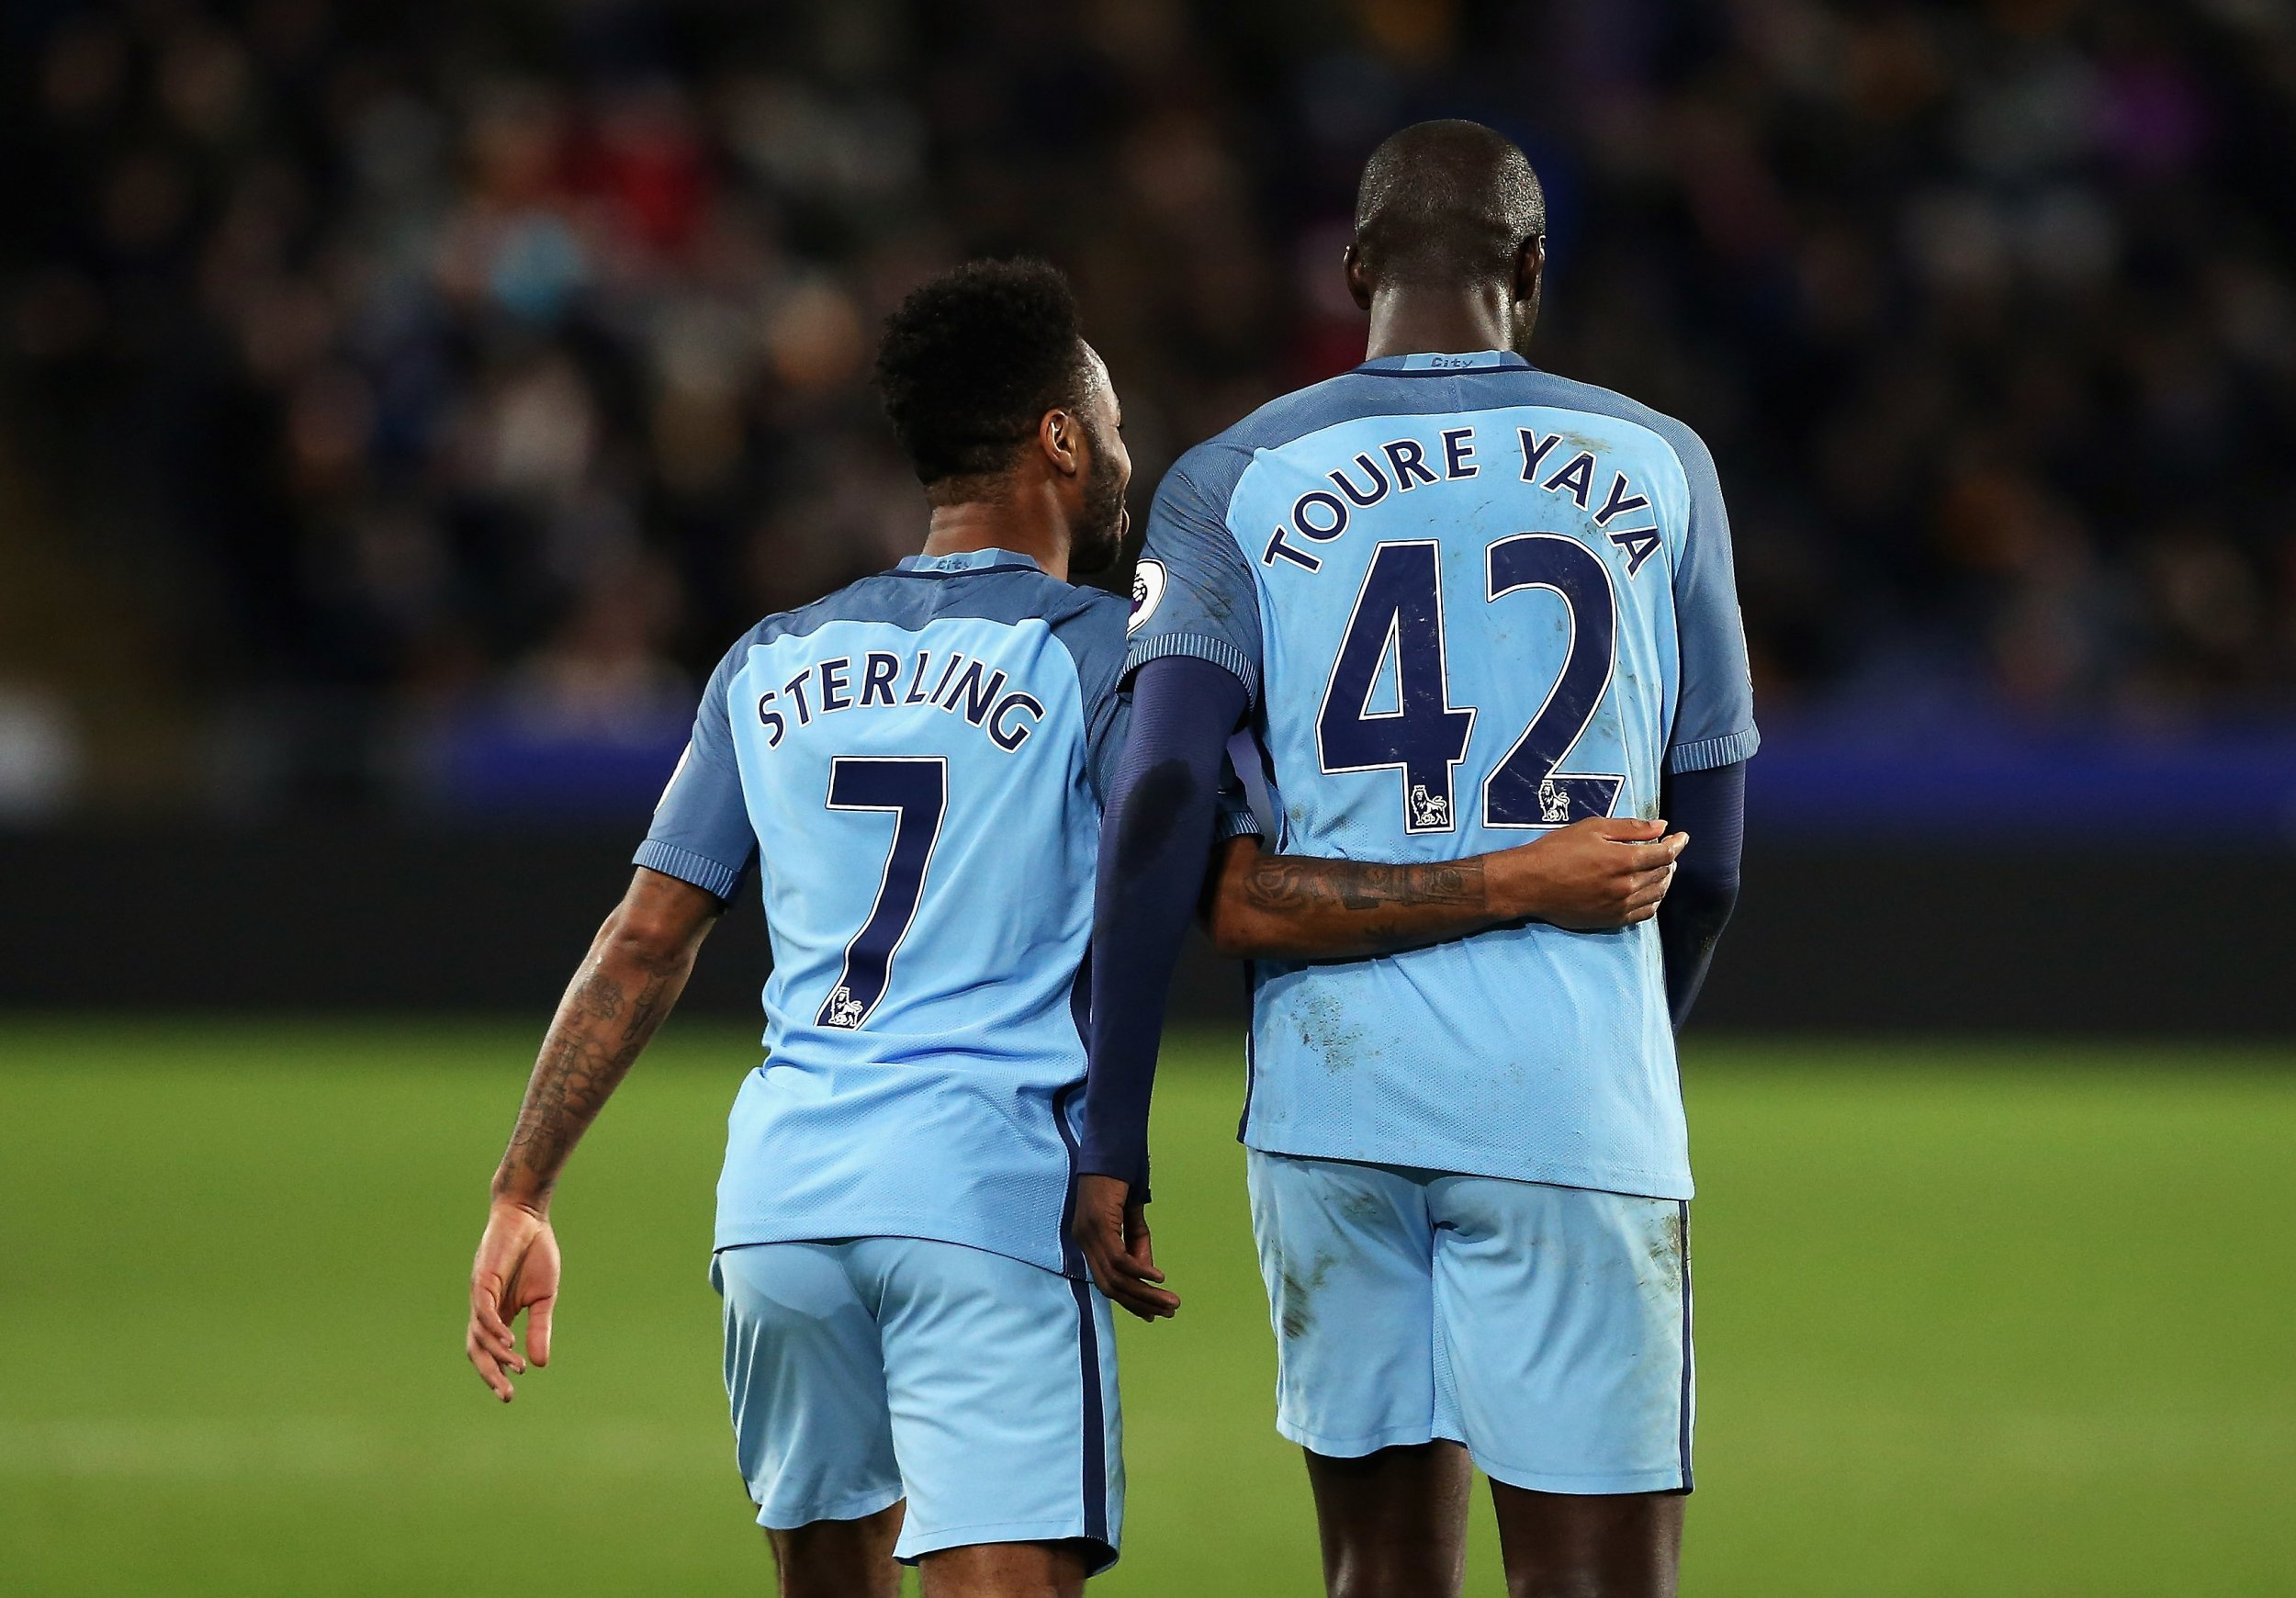 Sterling and Toure